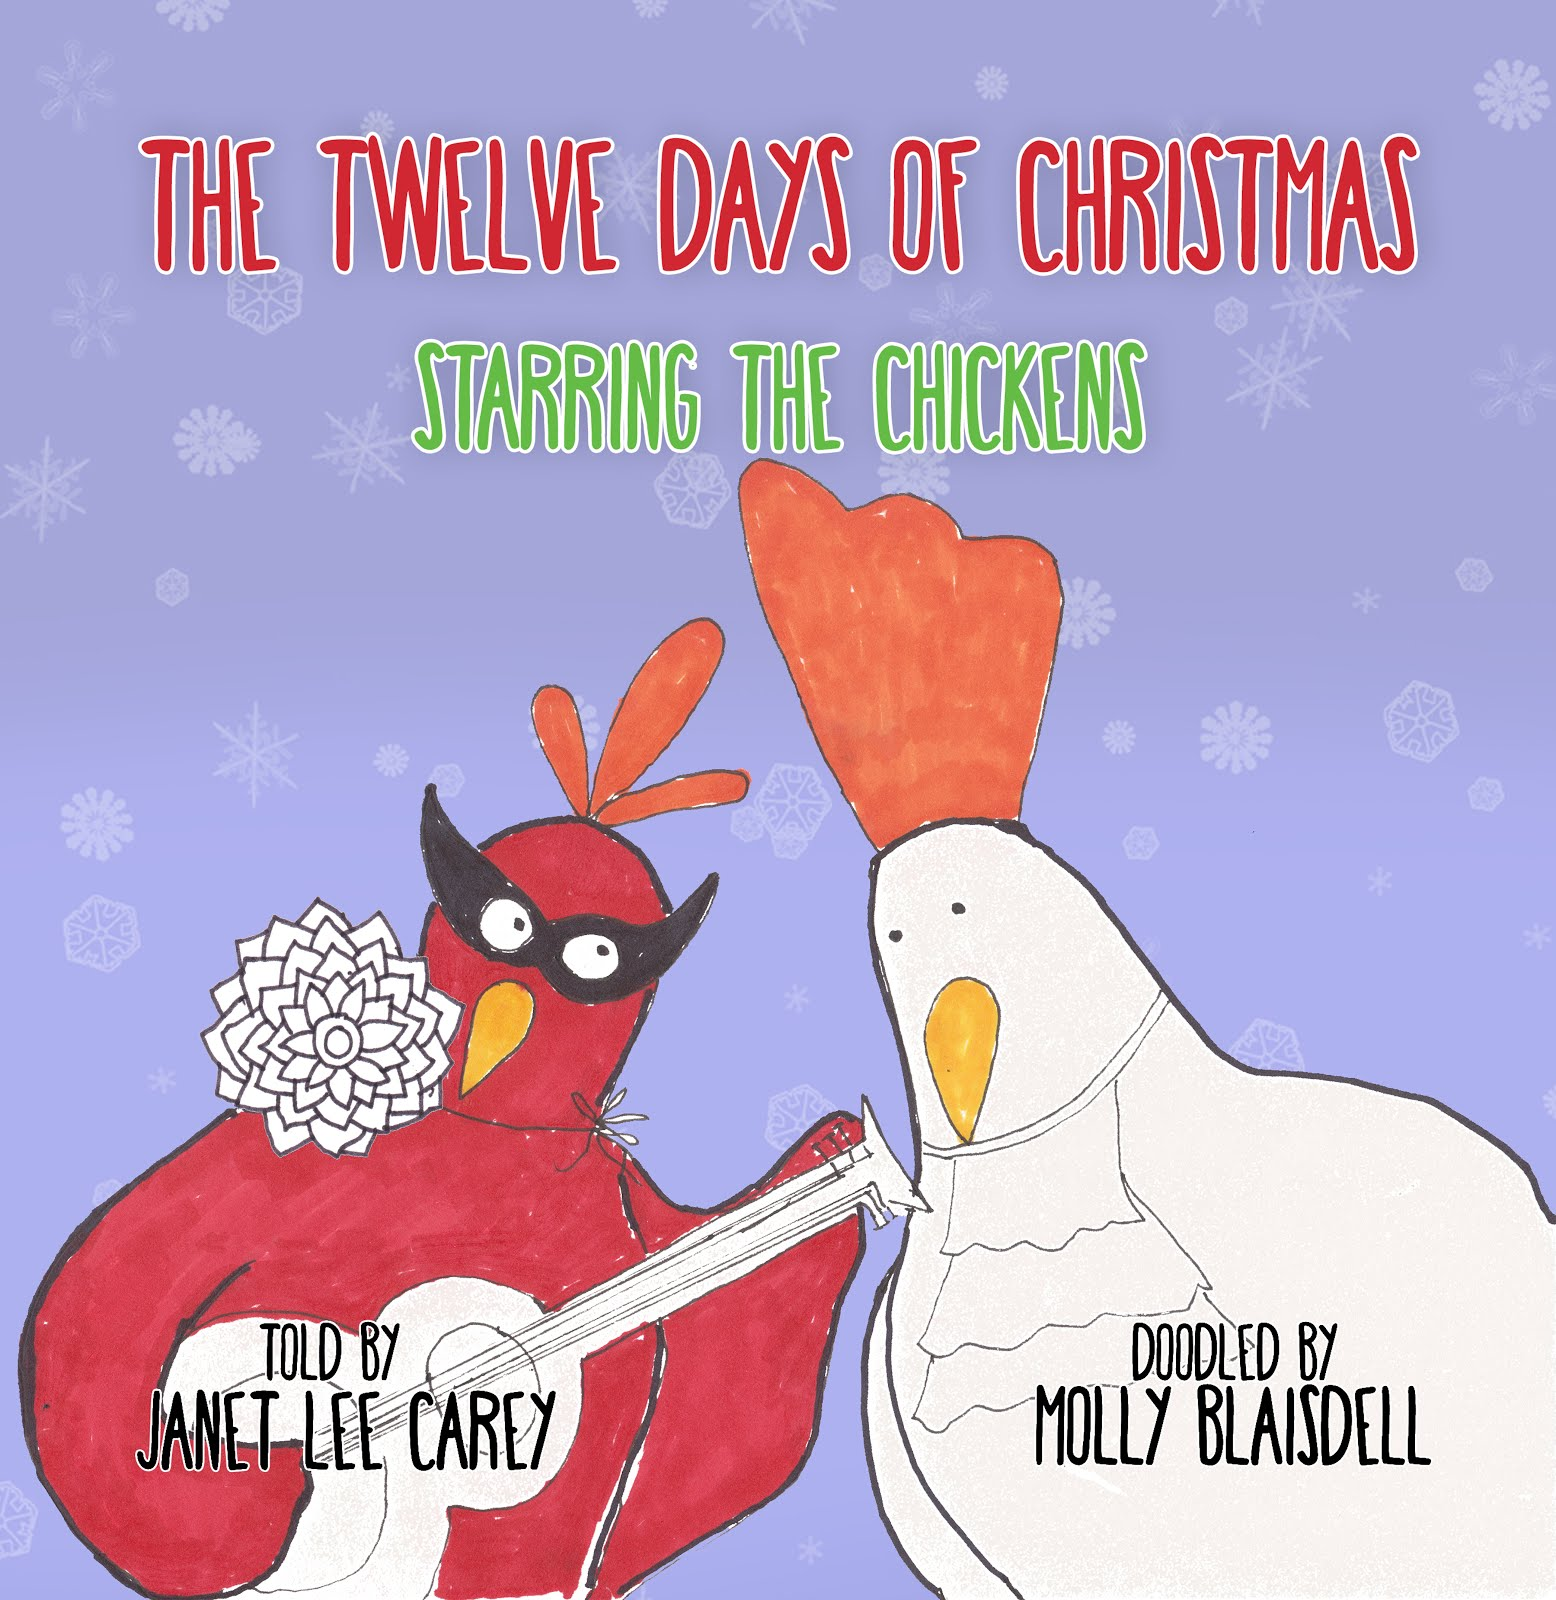 The Twelve Days of Christmas: Starring the Chickens